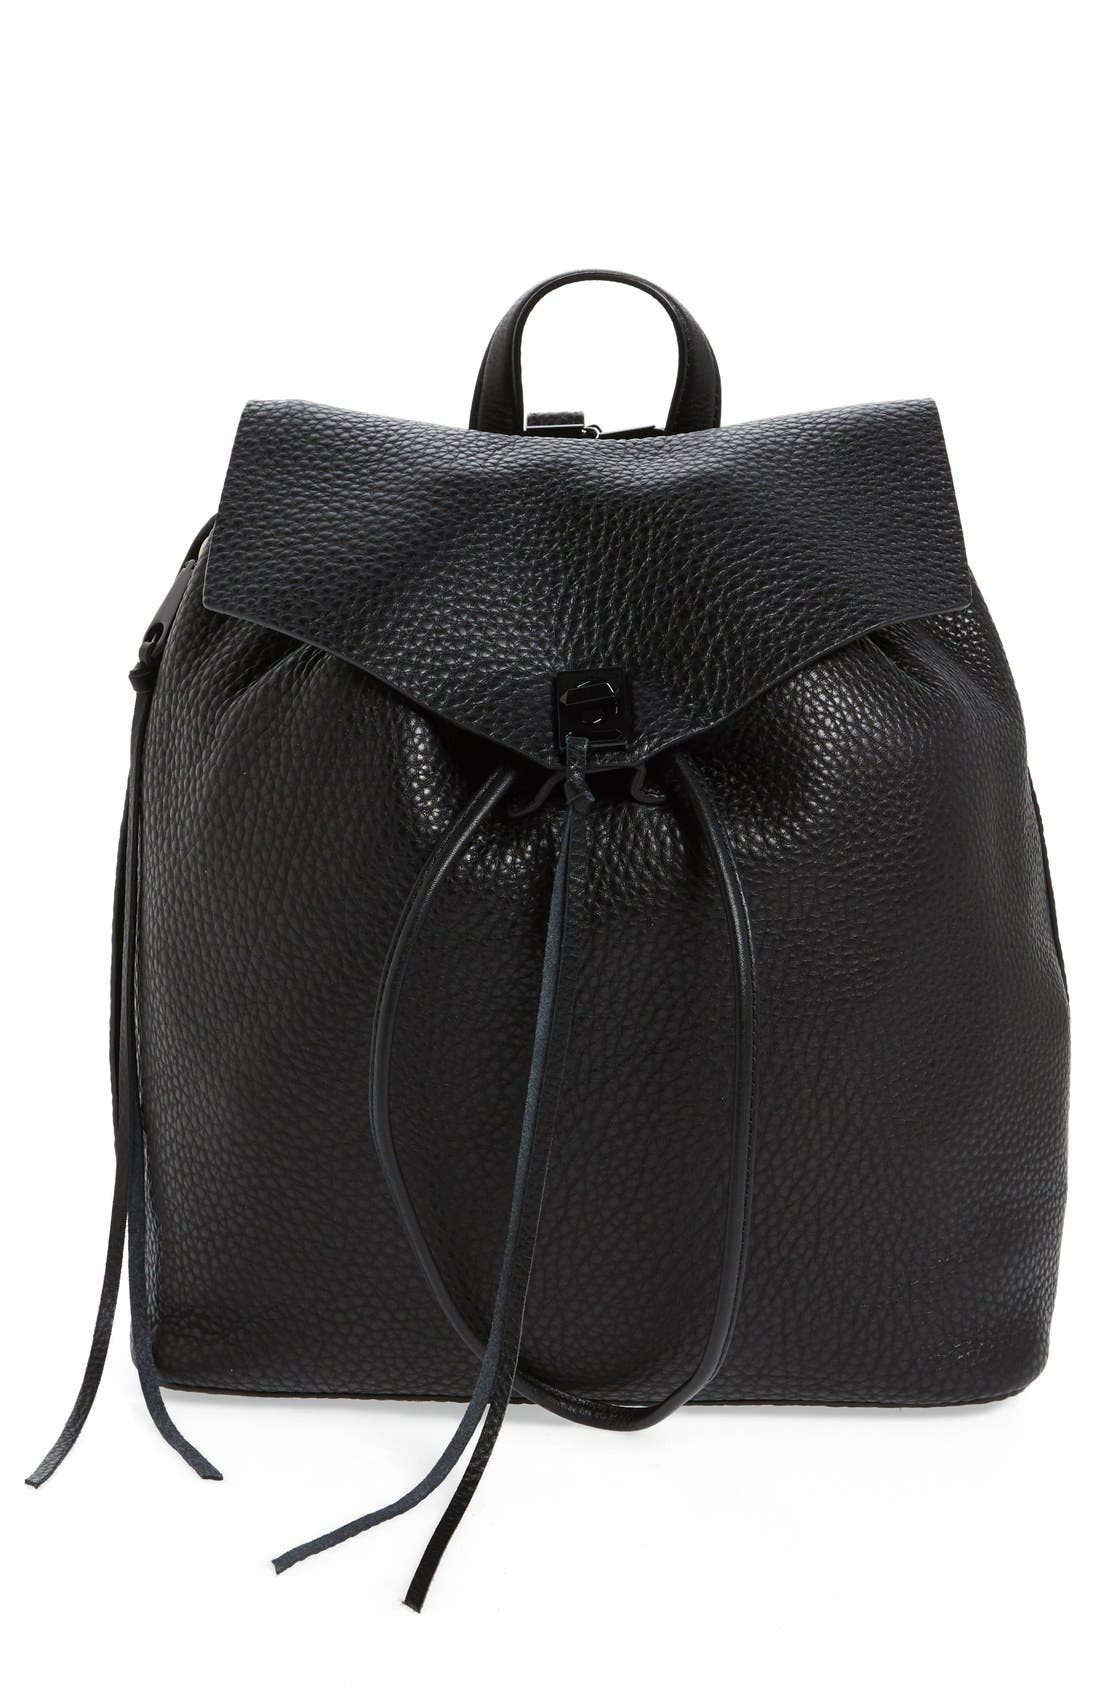 Main Image - Rebecca Minkoff Darren Leather Backpack